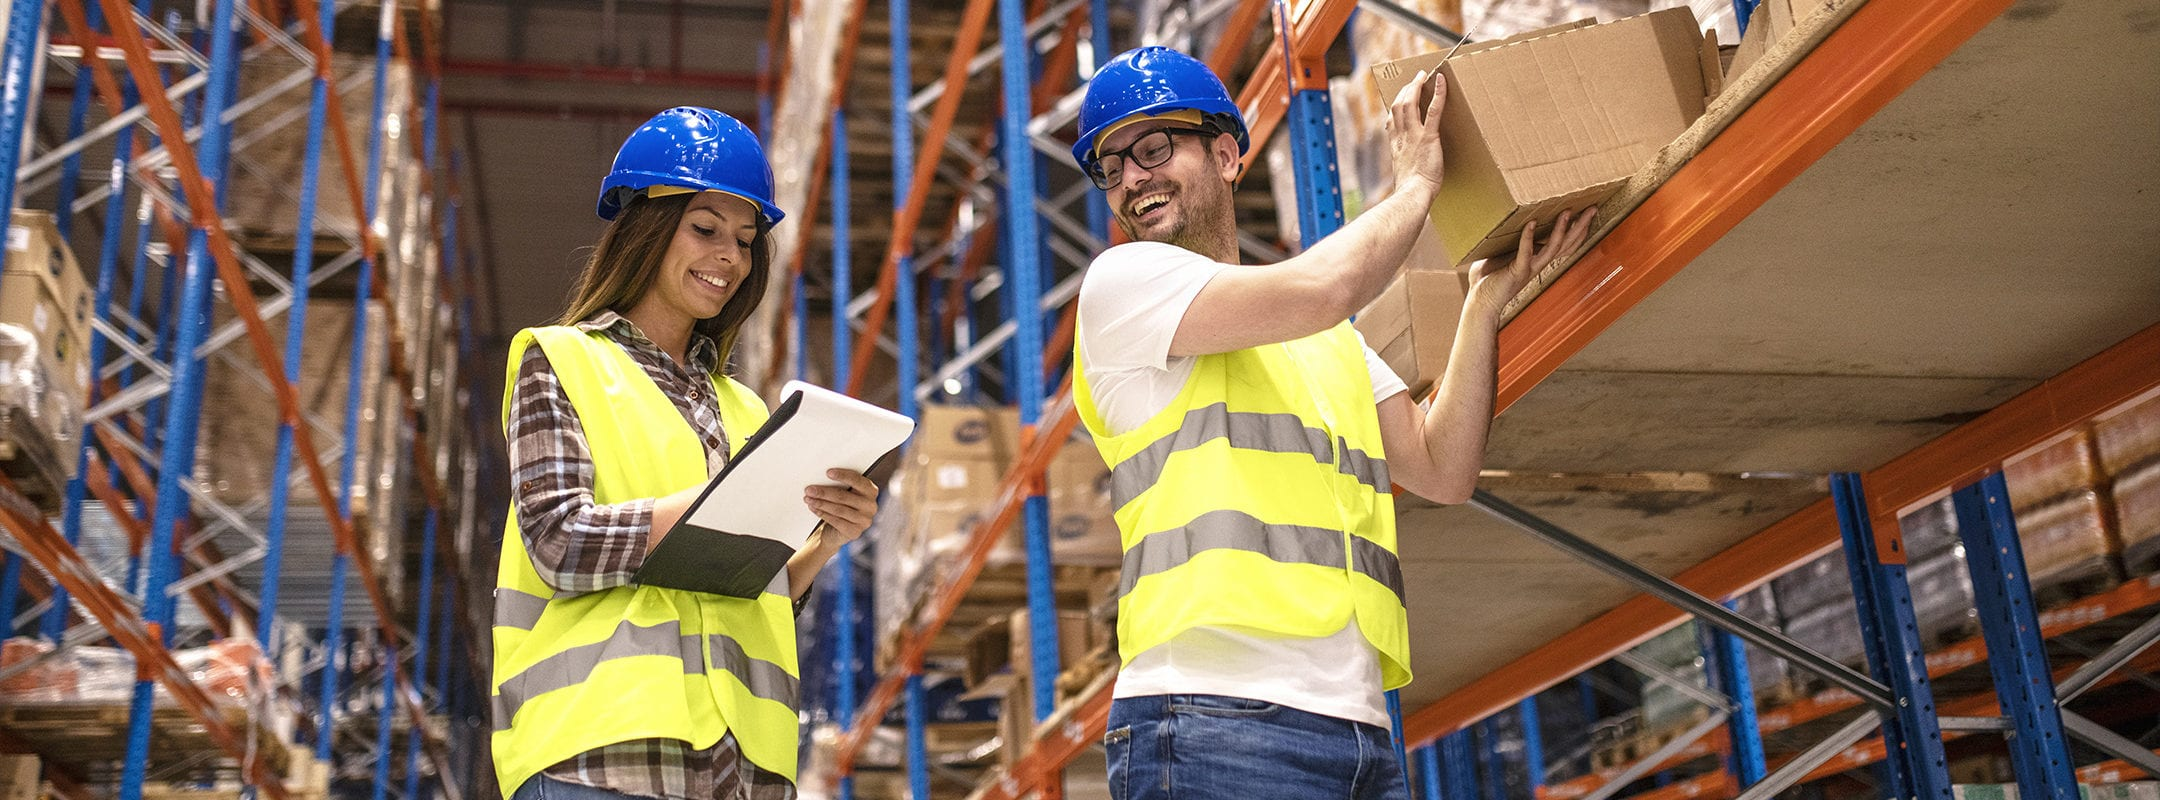 Two young people working together in warehouse storage facility. Checking goods at distribution warehouse.